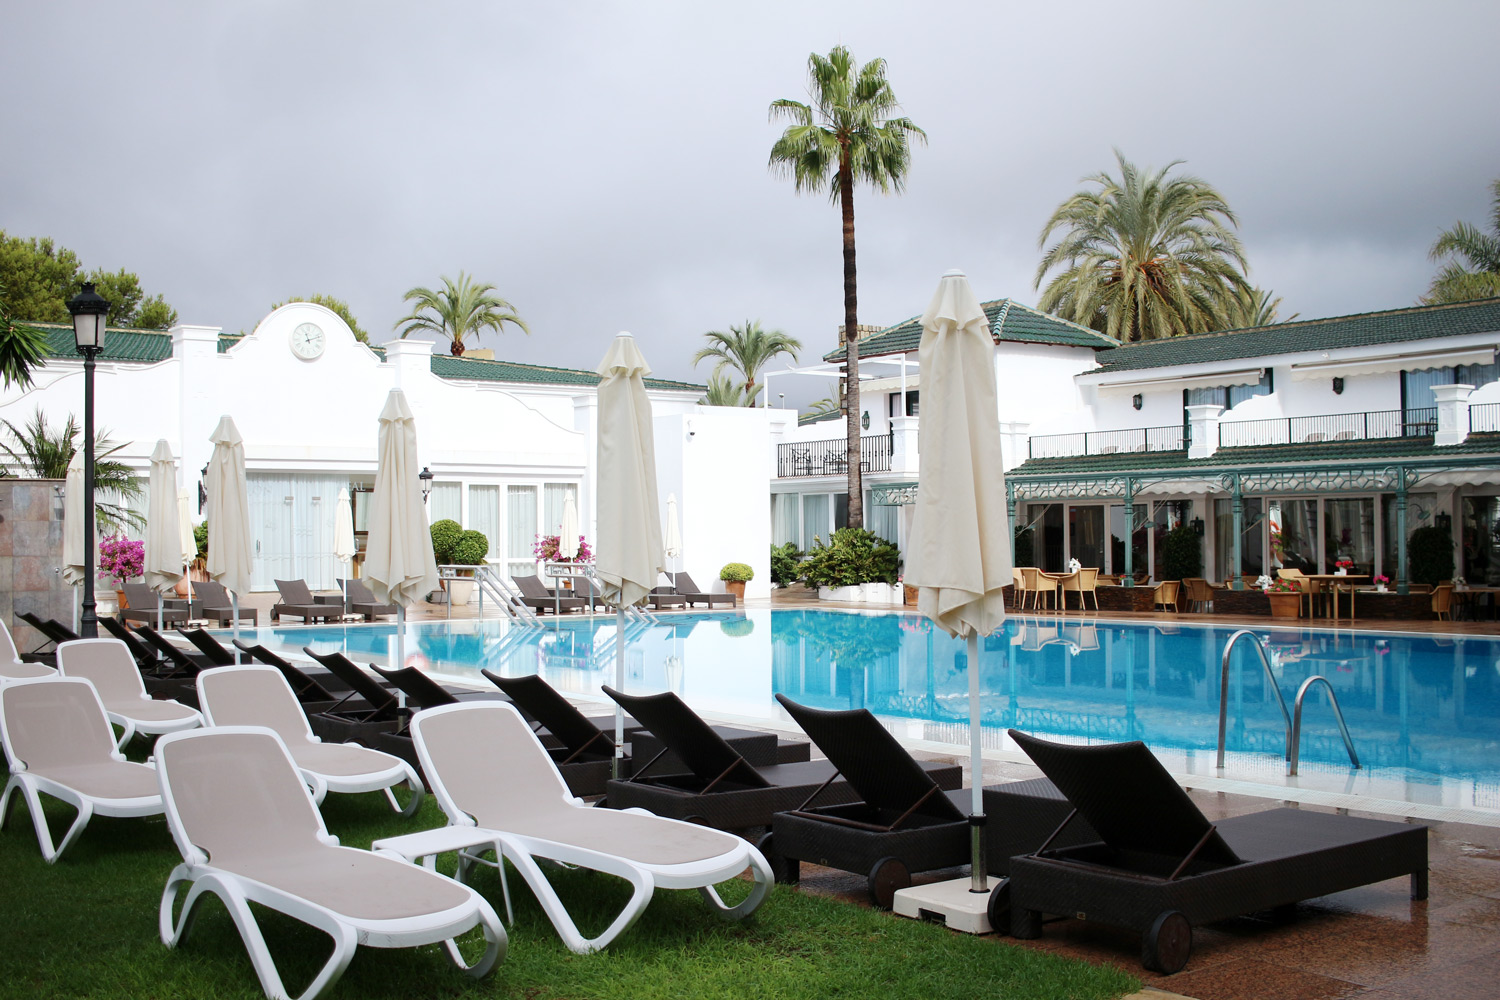 los-monteros-hotel-spa-nad-golf-marbella-spain-review-travel-blogger-11